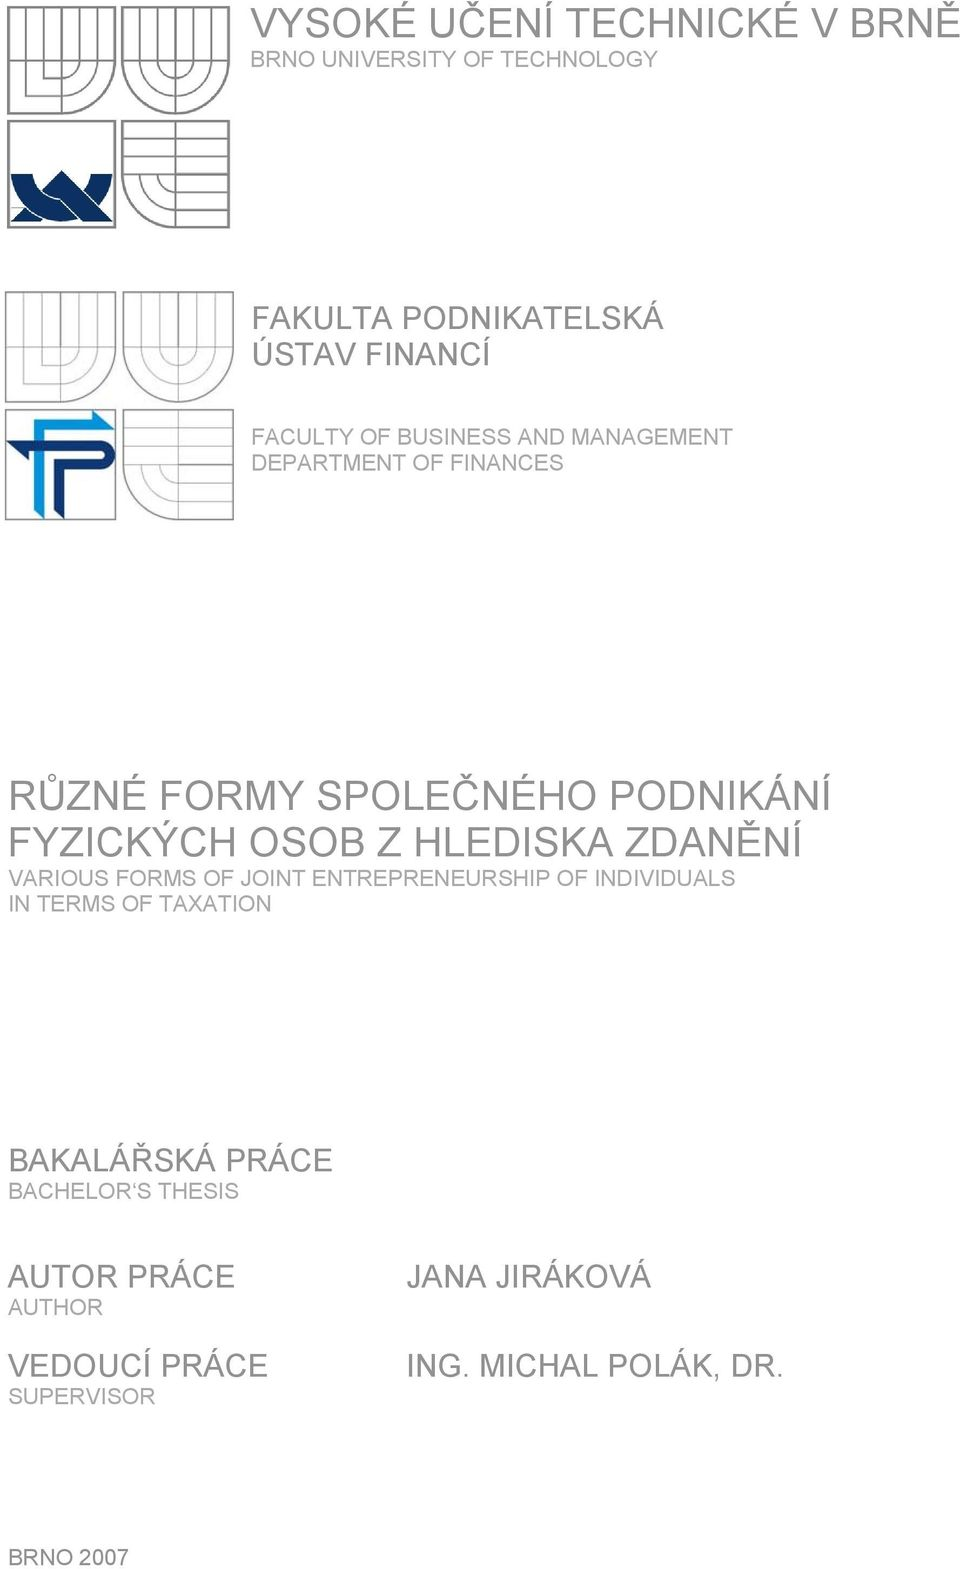 HLEDISKA ZDANĚNÍ VARIOUS FORMS OF JOINT ENTREPRENEURSHIP OF INDIVIDUALS IN TERMS OF TAXATION BAKALÁŘSKÁ